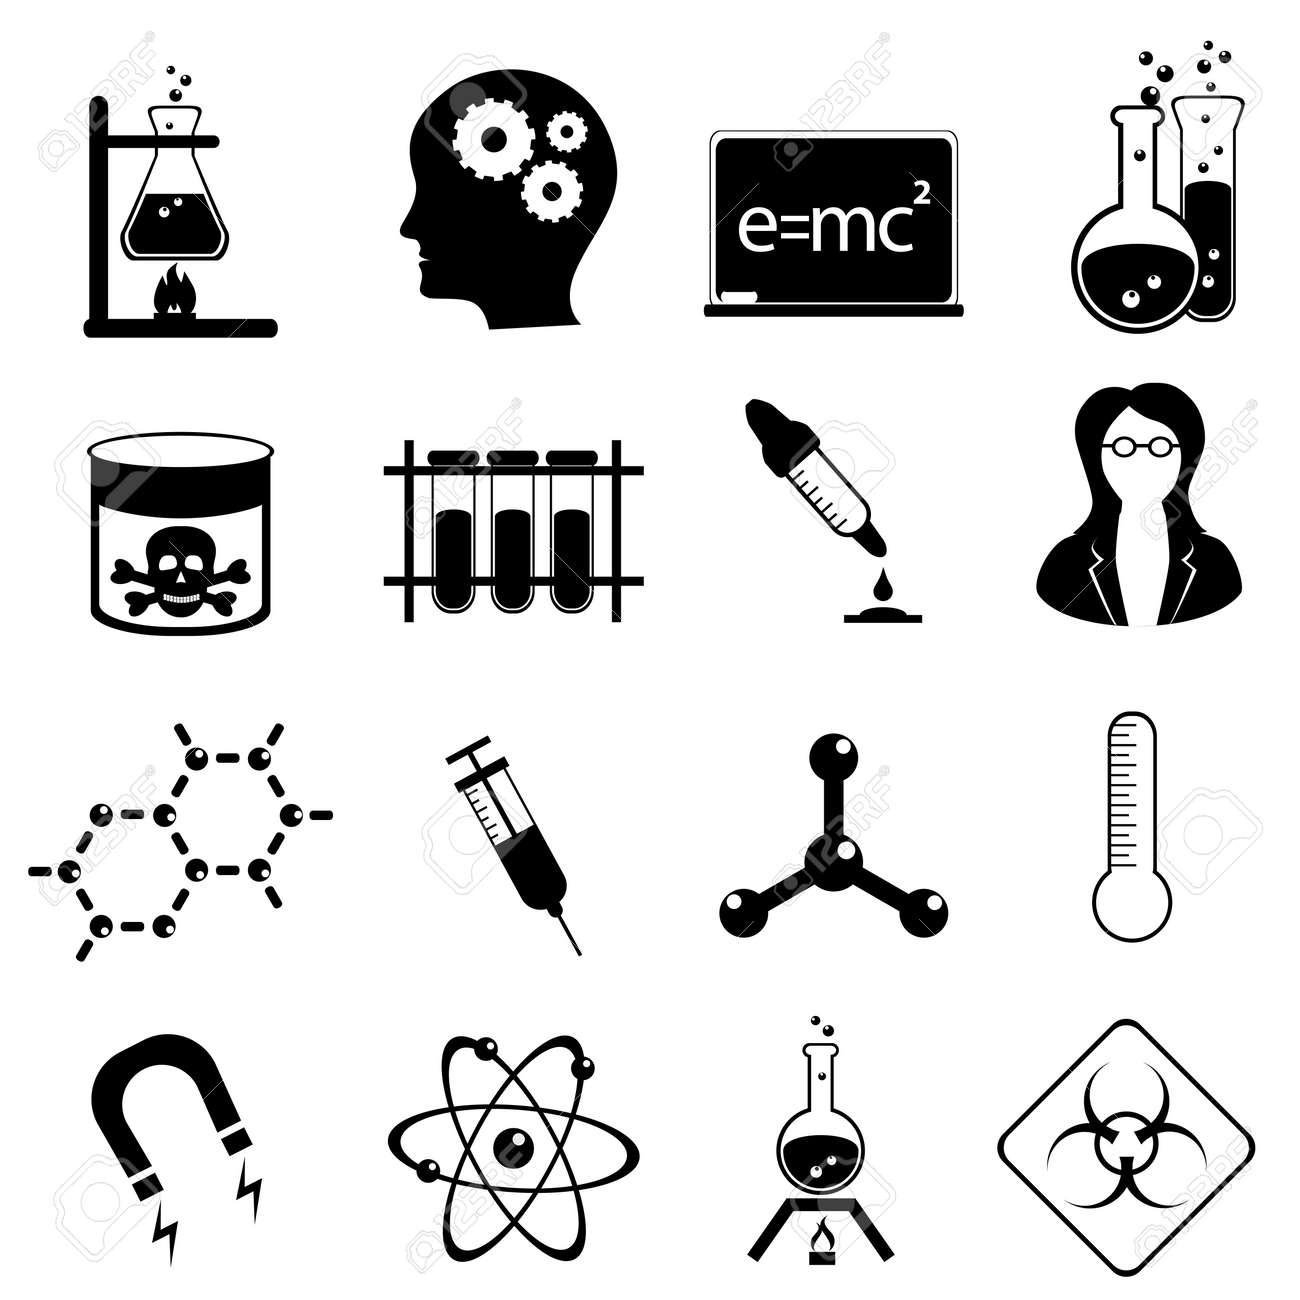 chemistry and medical science icon set in black royalty free cliparts vectors and stock illustration image 10679037 chemistry and medical science icon set in black